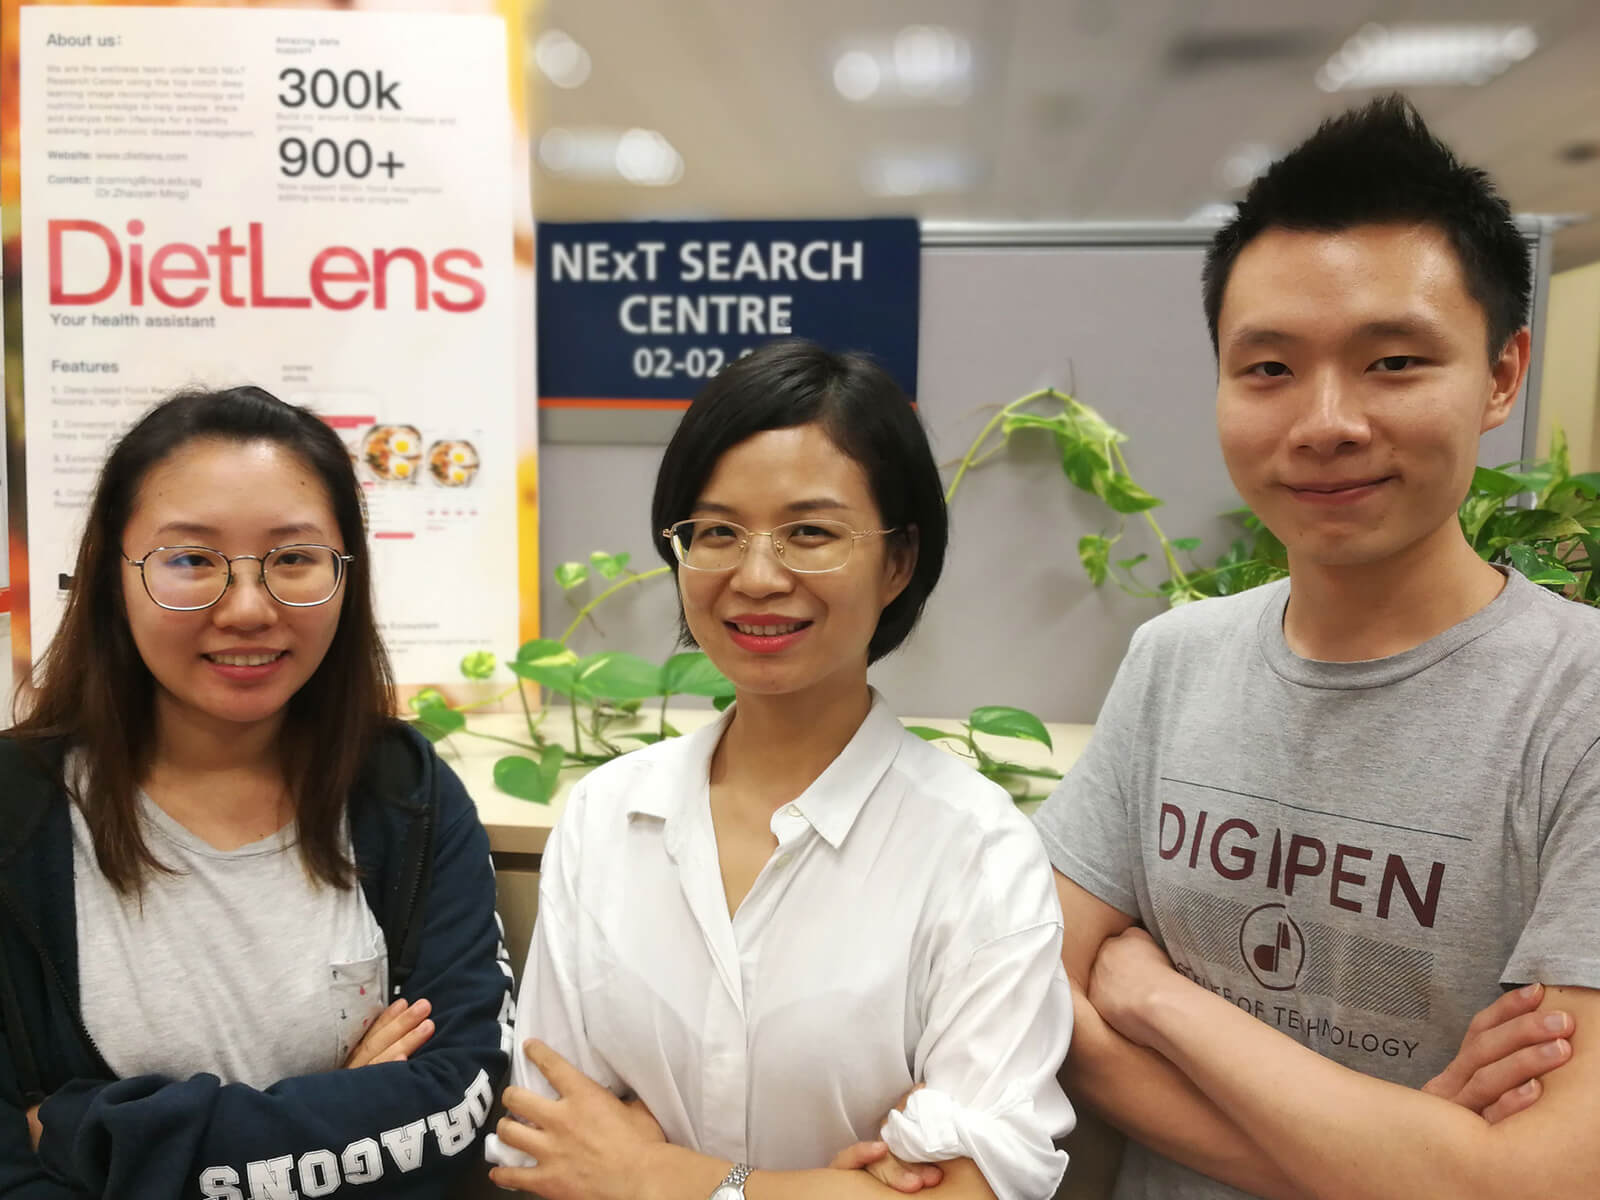 DigiPen (Singapore) alumni Irene Tan and Lim Sing Gee pose with a coworker in front of a DietLens banner